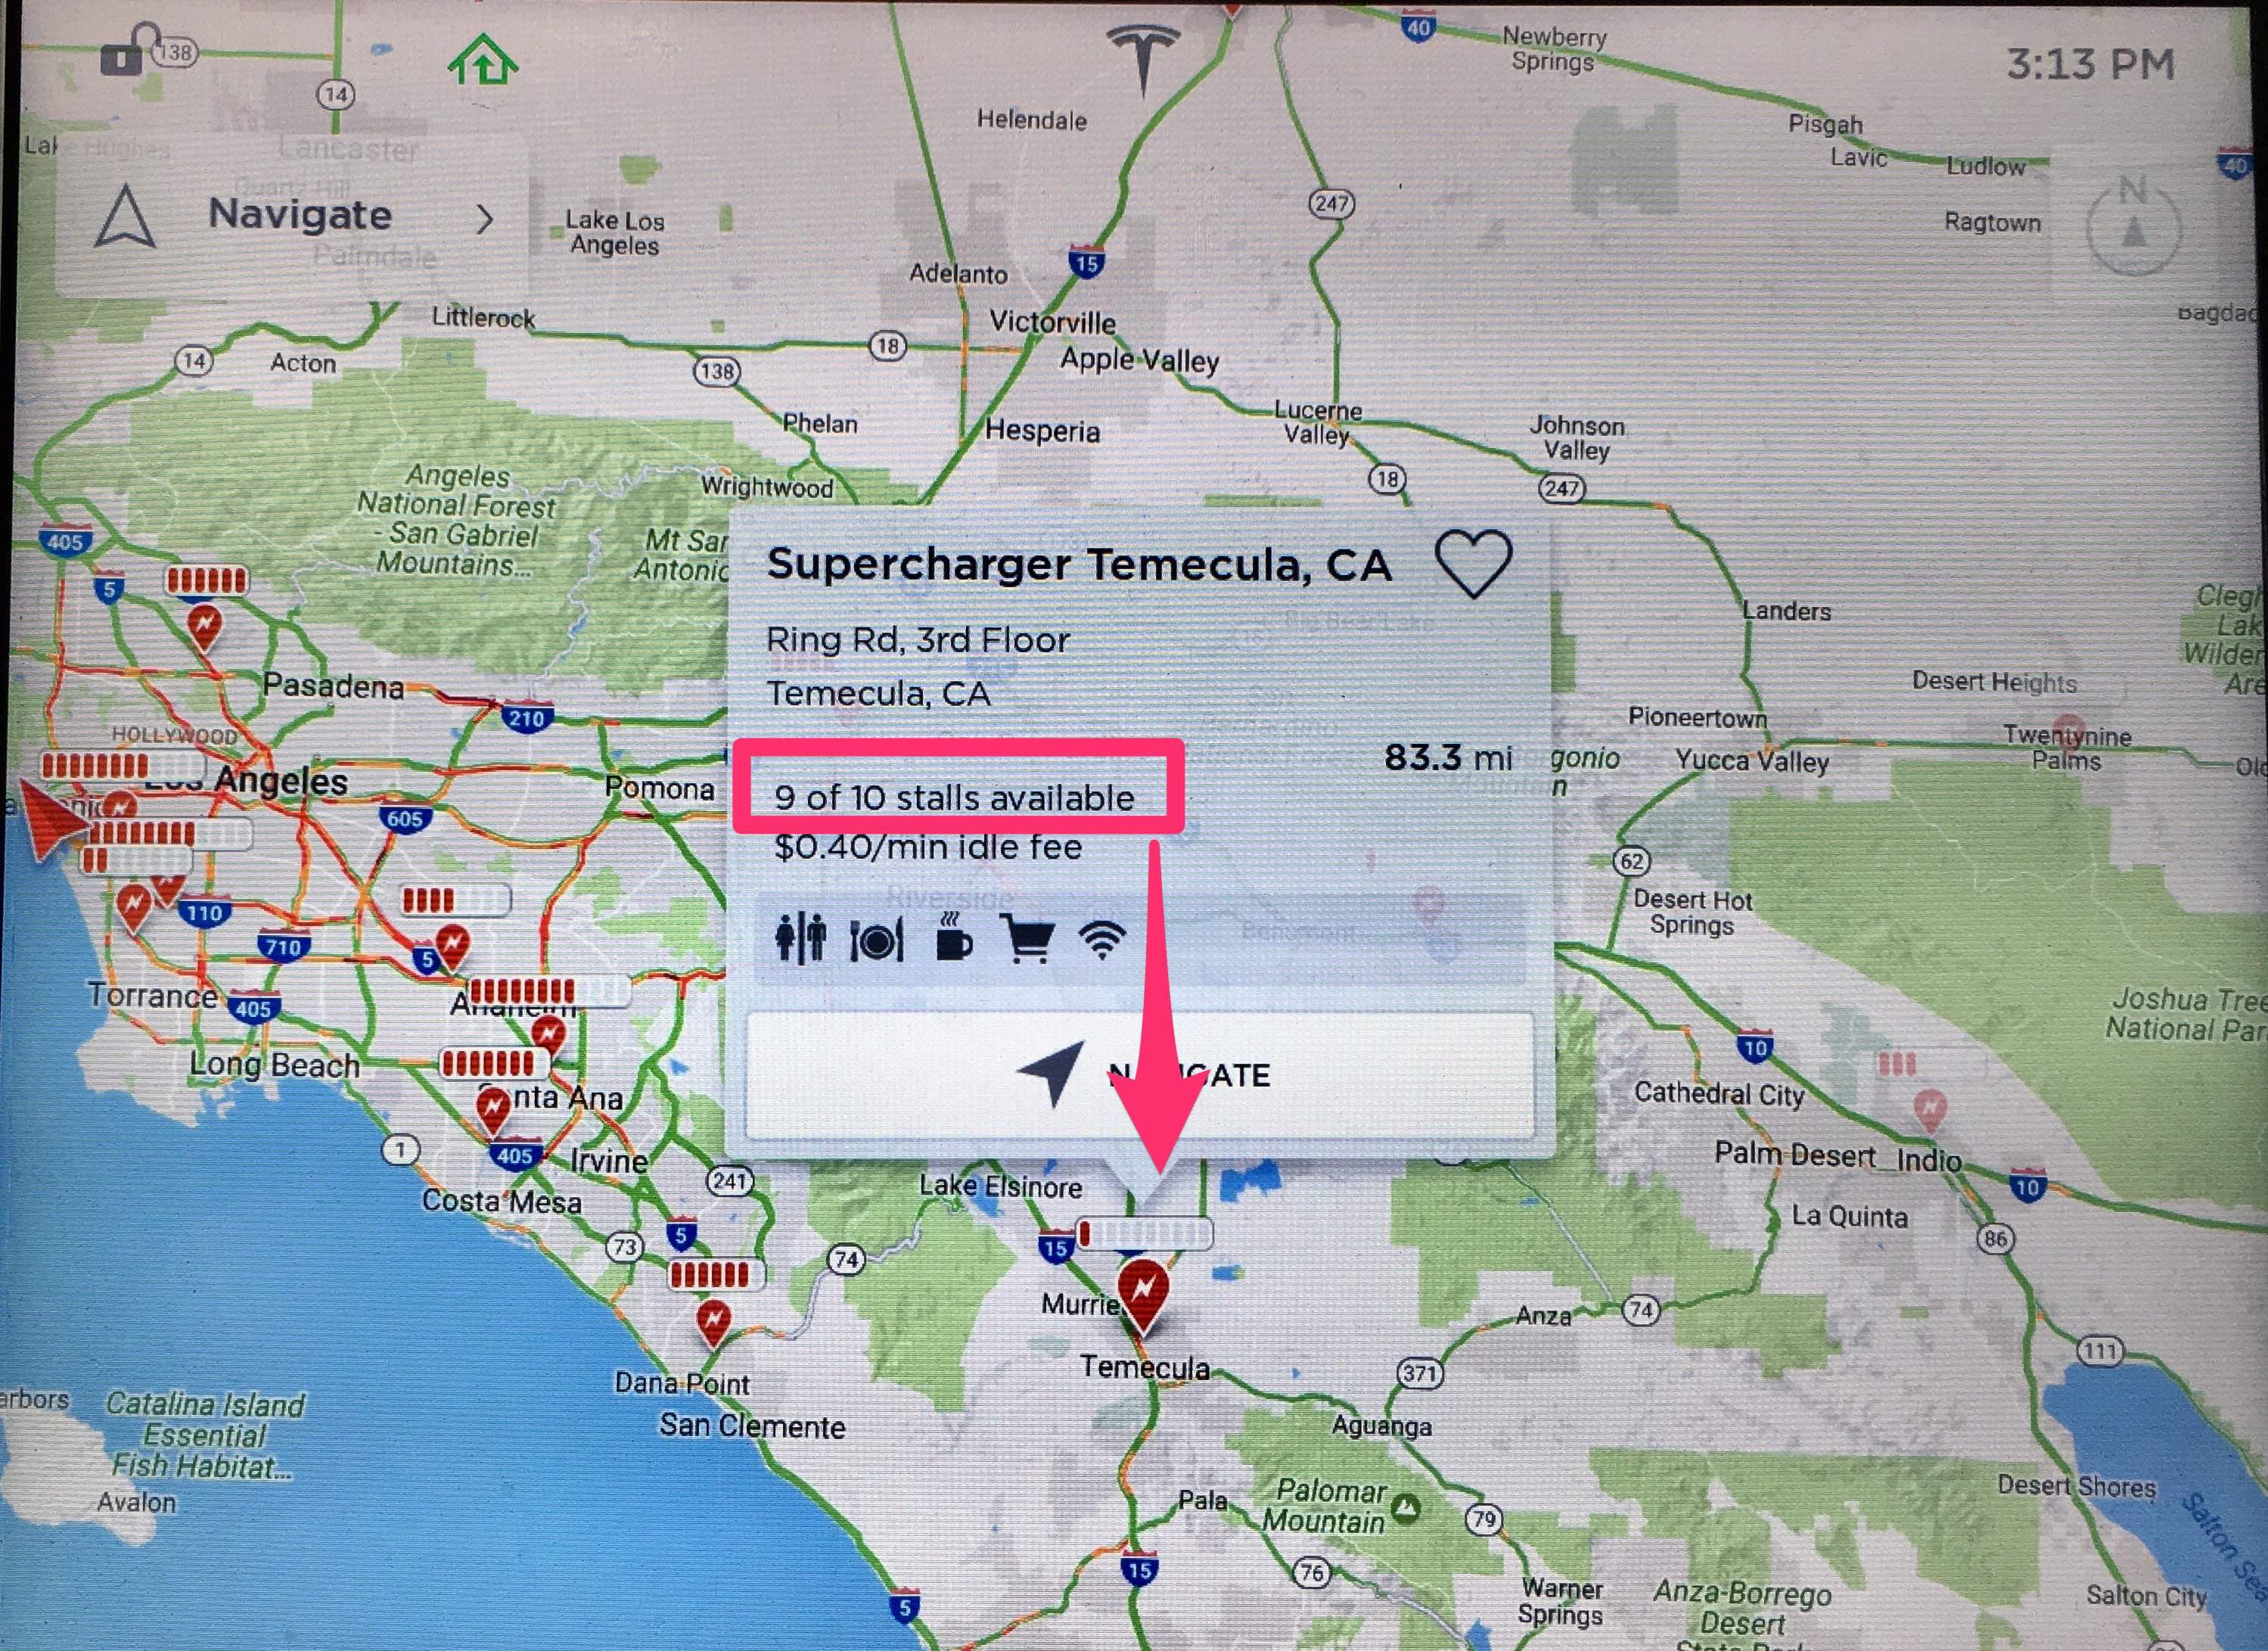 Tesla unlocks real time Supercharger occupancy data on vehicle map